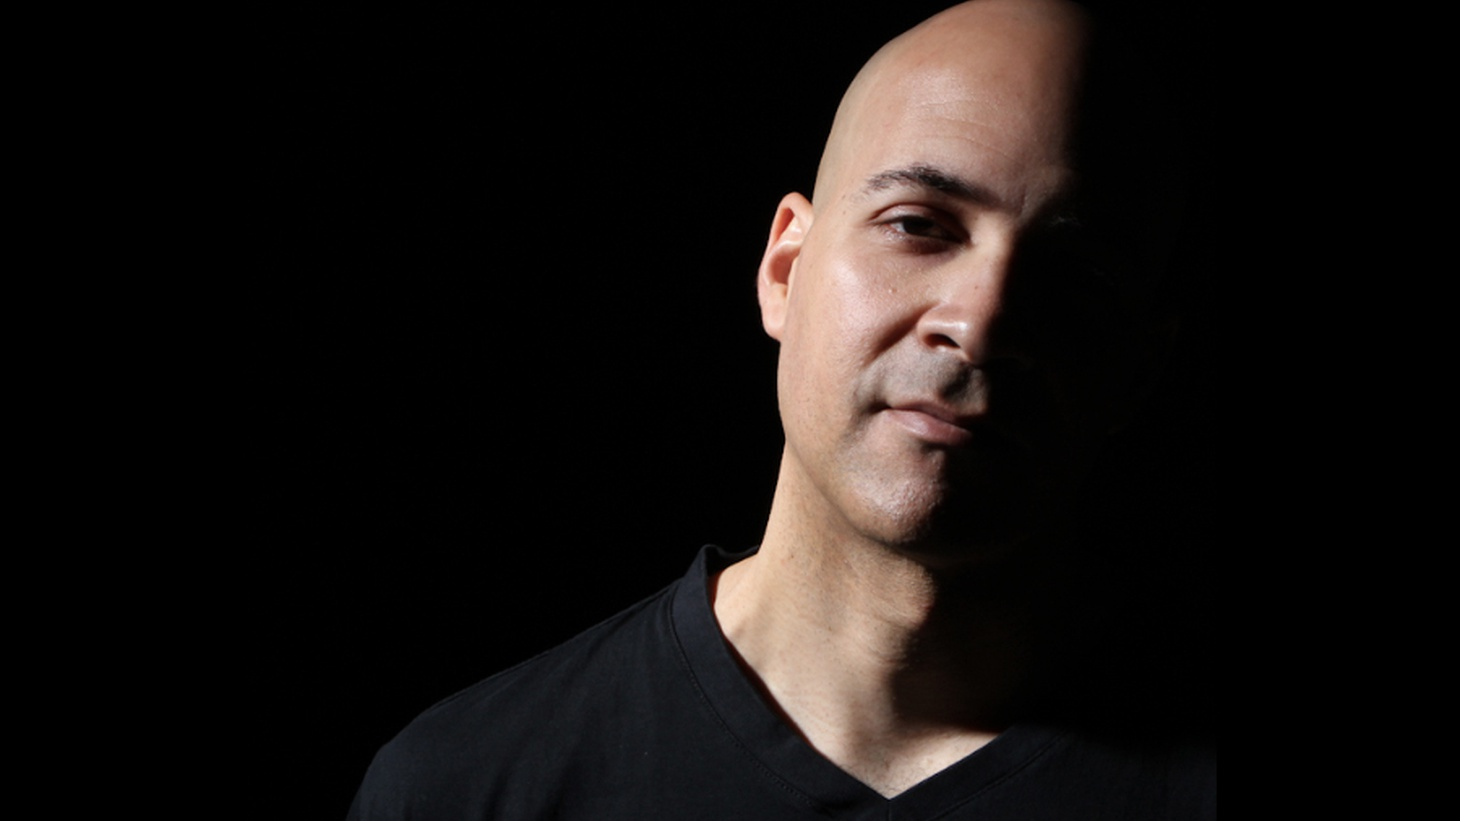 The sonically diverse Philadelphia-based producer, lyricist, musician, programmer, engineer and DJ, Vikter Duplaix, known for his work with DJ Jazzy Jeff, Erykah Badu, and The Roots, joins Garth Trinidad at 11pm. Vikter Duplaix will performing as part of Black Palette Circuitry Part II, Sunday July 15th @ Moomba, 9 pm - 2 am - 665 N. Robertson in West Hollywood.